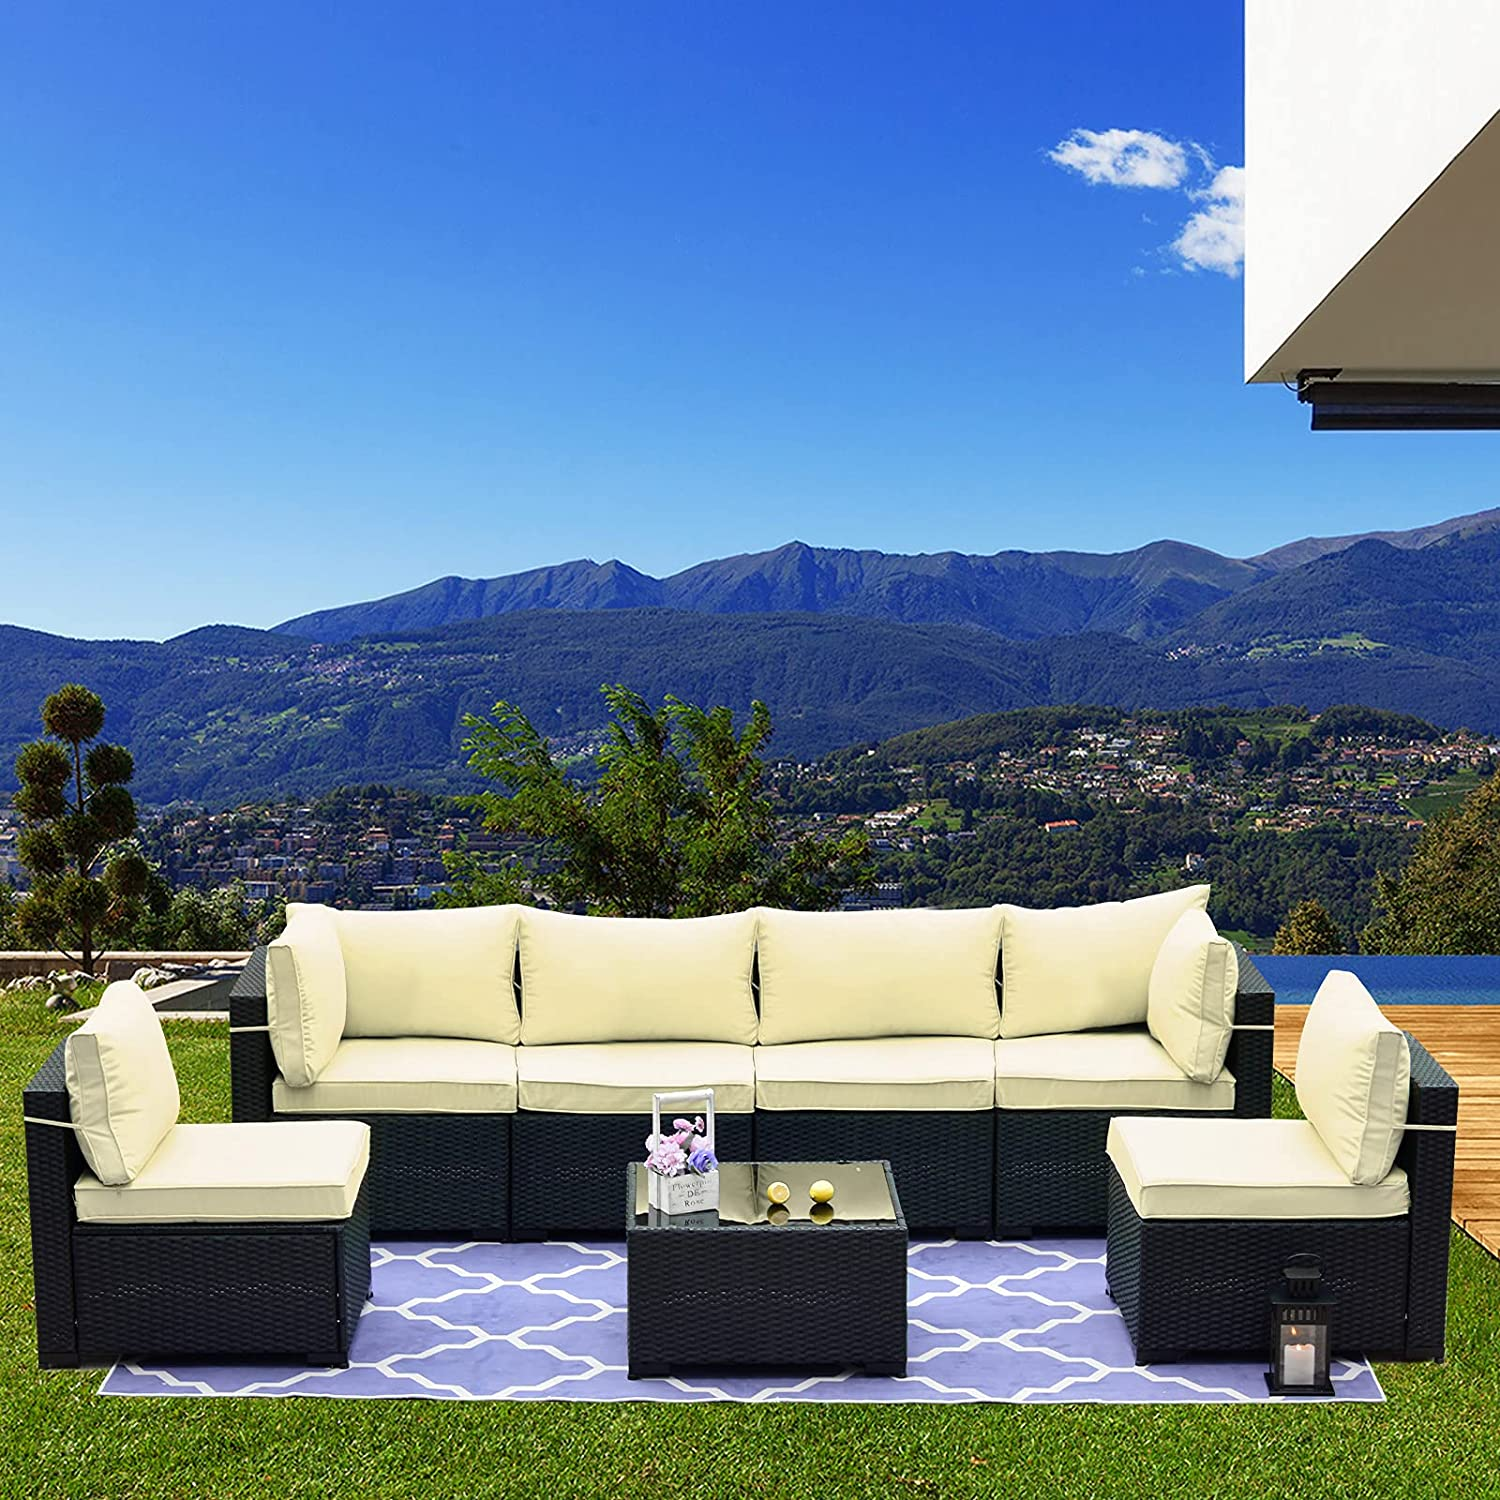 Kullavik Patio Furniture Set 7 Pieces Outdoor Sectional Rattan Sofa Set Black Manual Wicker Patio Conversation Set with 6 Cream Seat Cushions and 1 Tempered Glass Tea Table